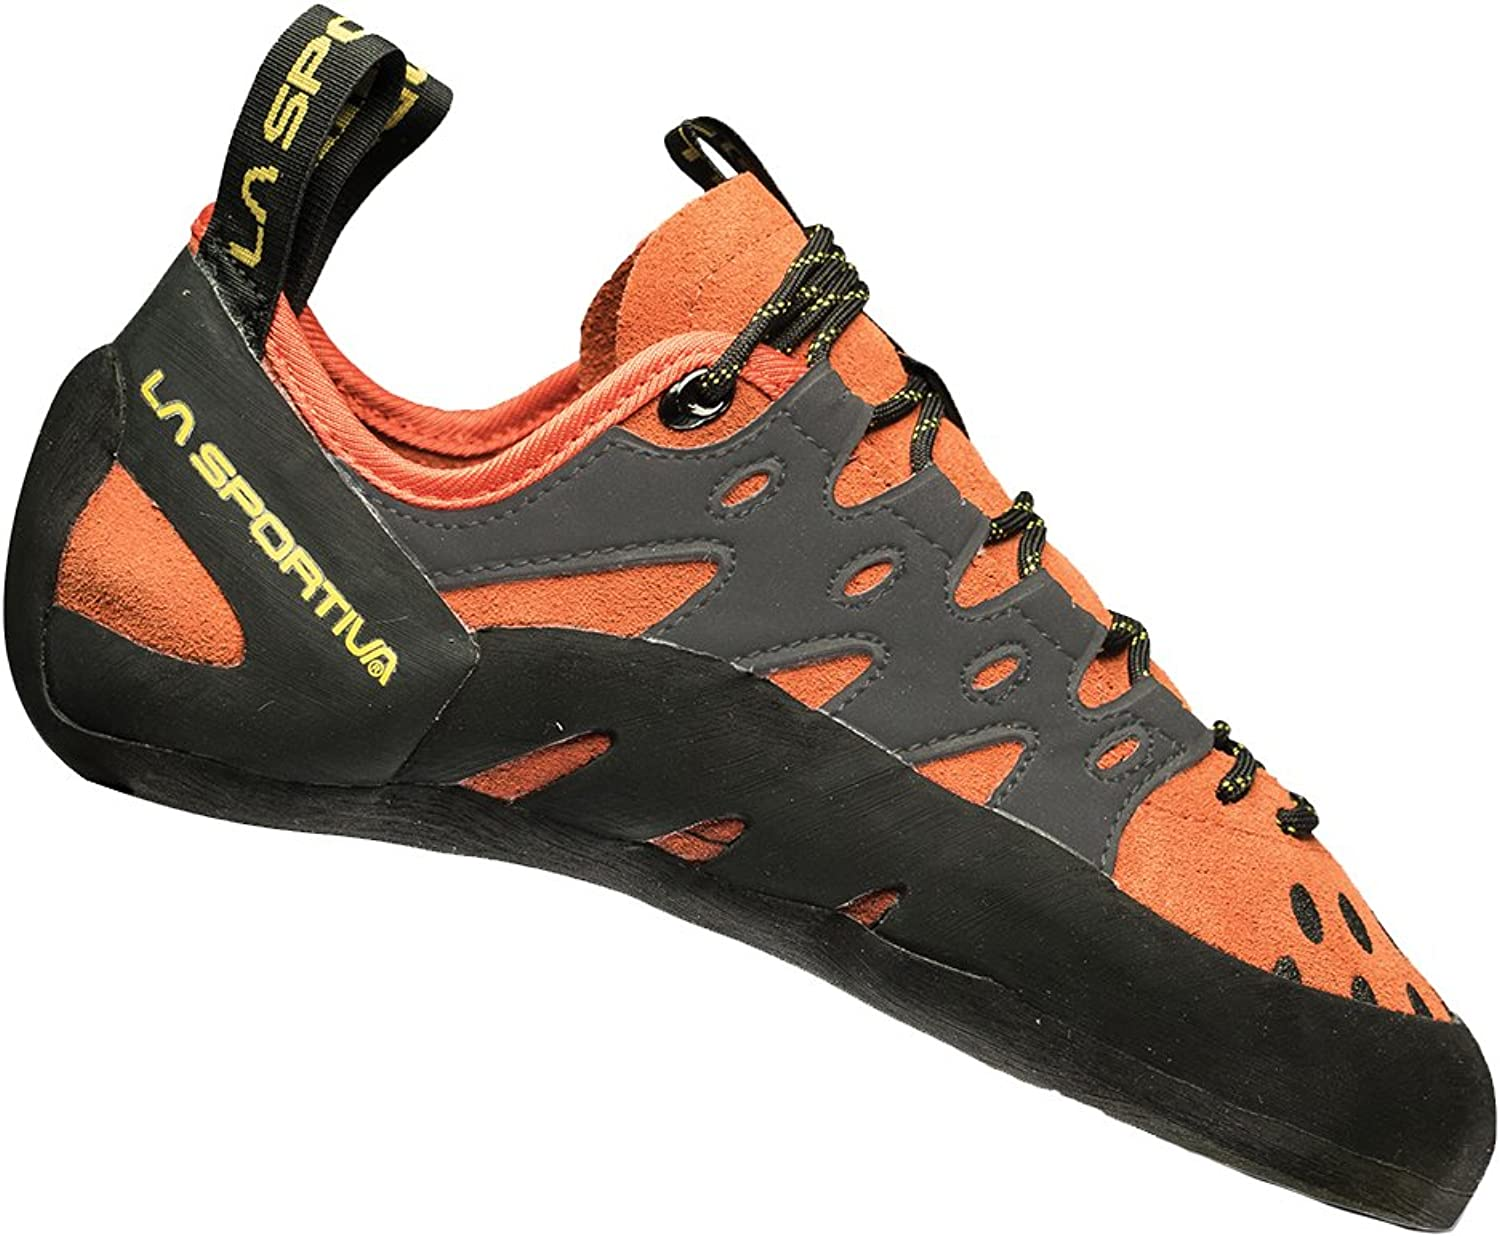 La Sportiva Men's TarantuLace Performance Rock Climbing shoes Green